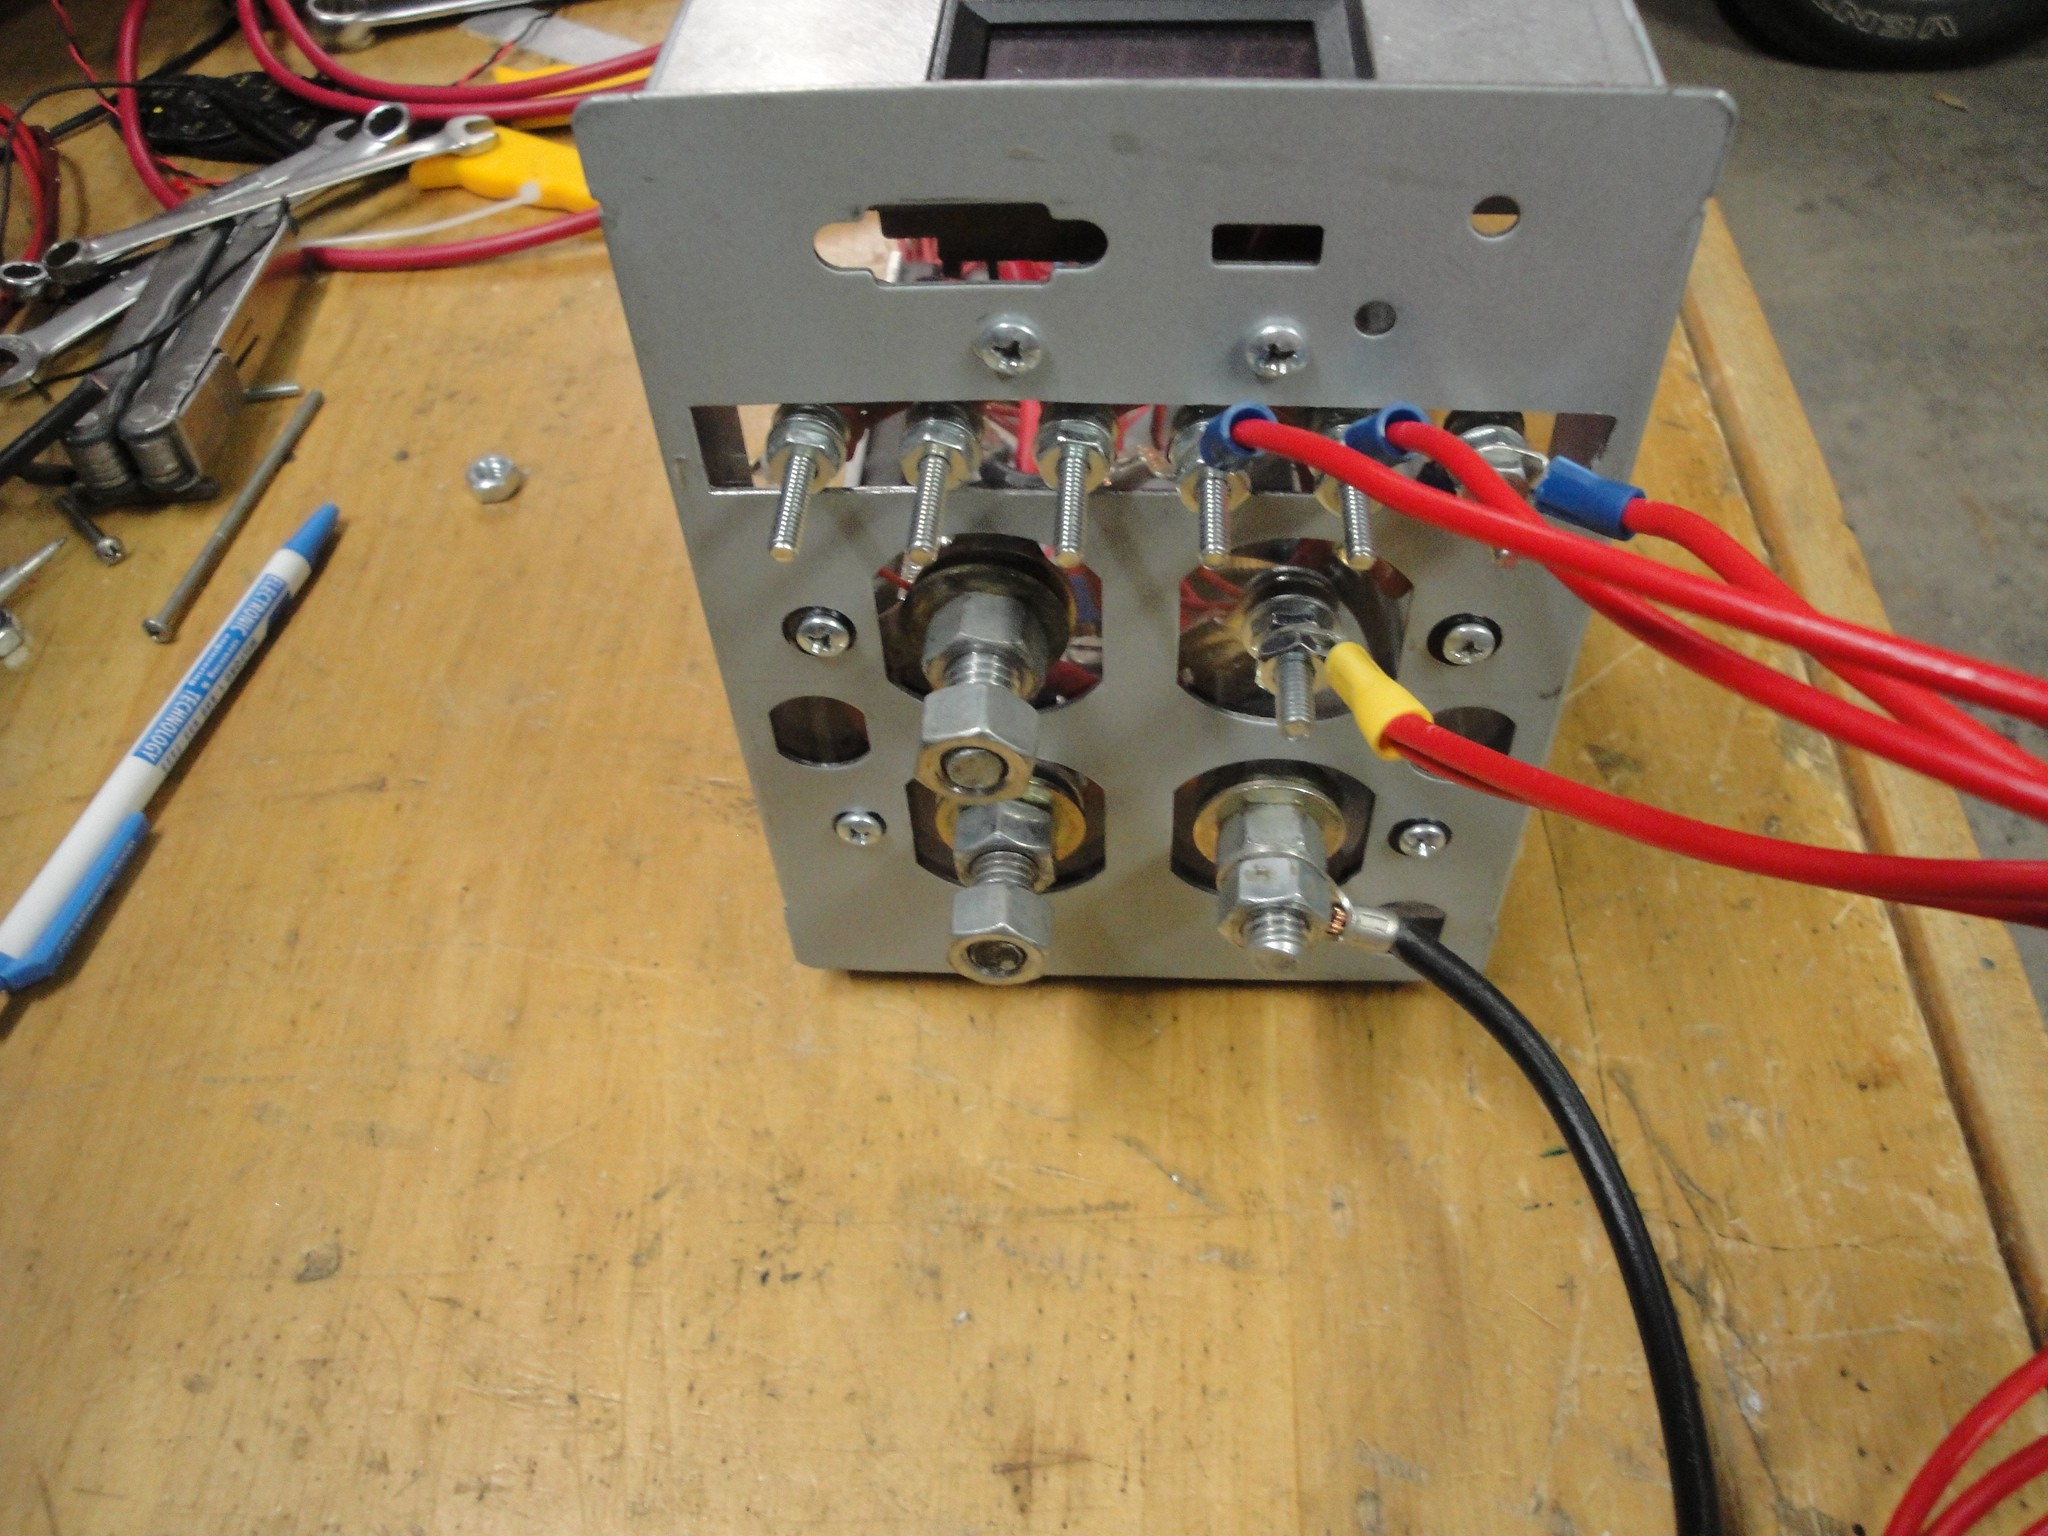 12v Battery Tester In The Above Circuit You See A Relay Red Square And Multiple Wires Were Ran To Different Loads Of Heater Coil Picture These Then Wired Up Into Controller Box